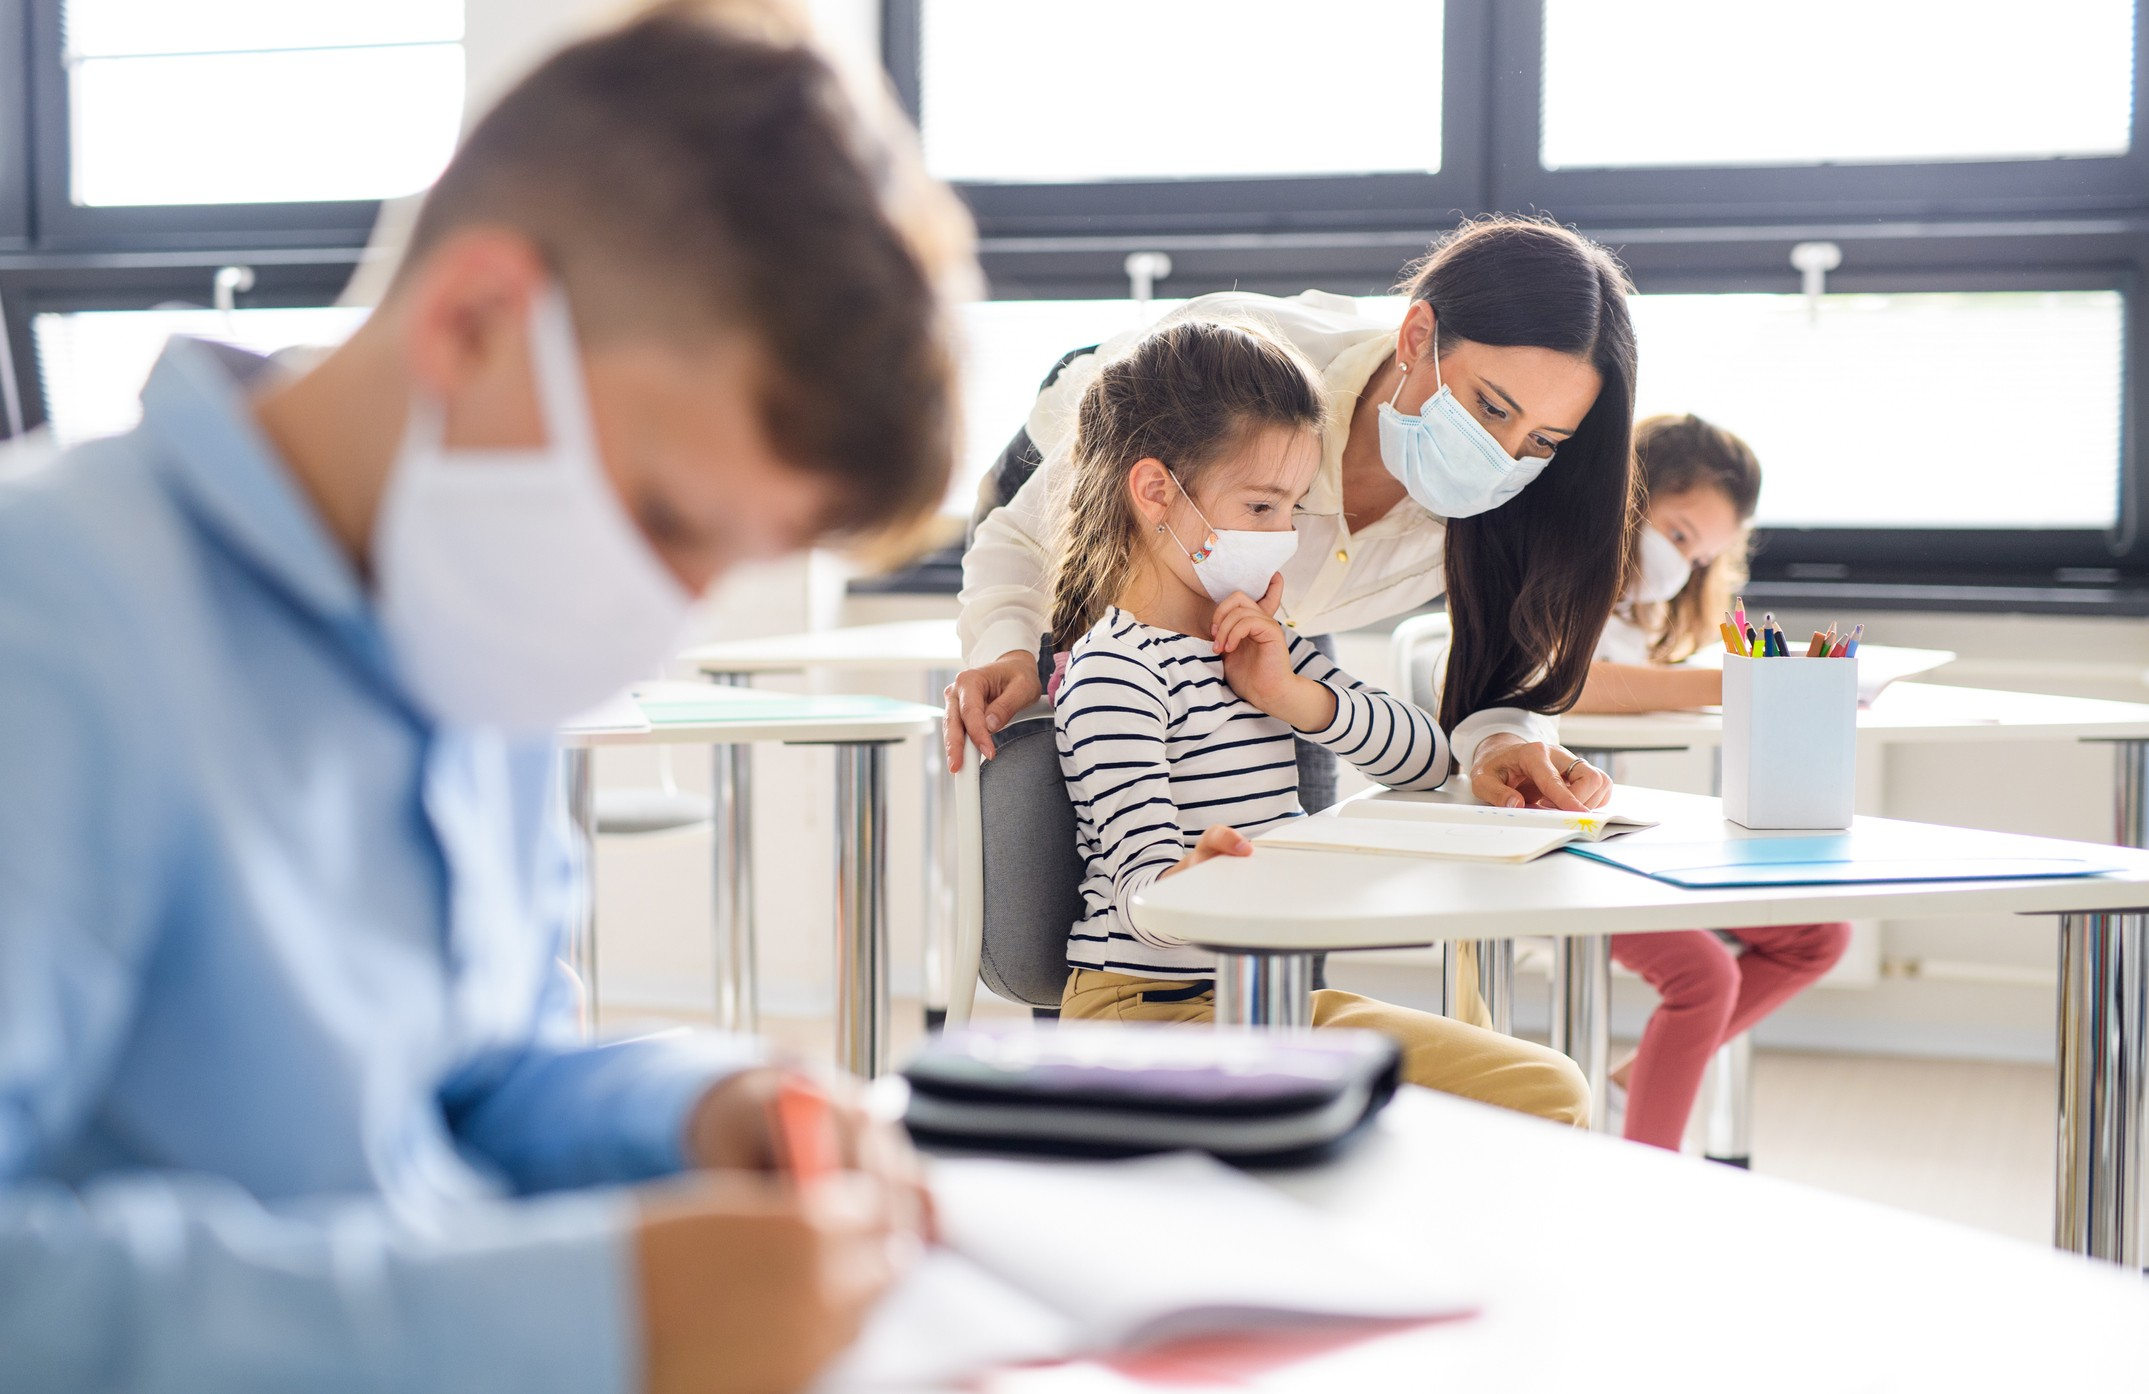 Three students sit socially distanced, wearing masks, in a classroom while a teacher helps one girl with her work.